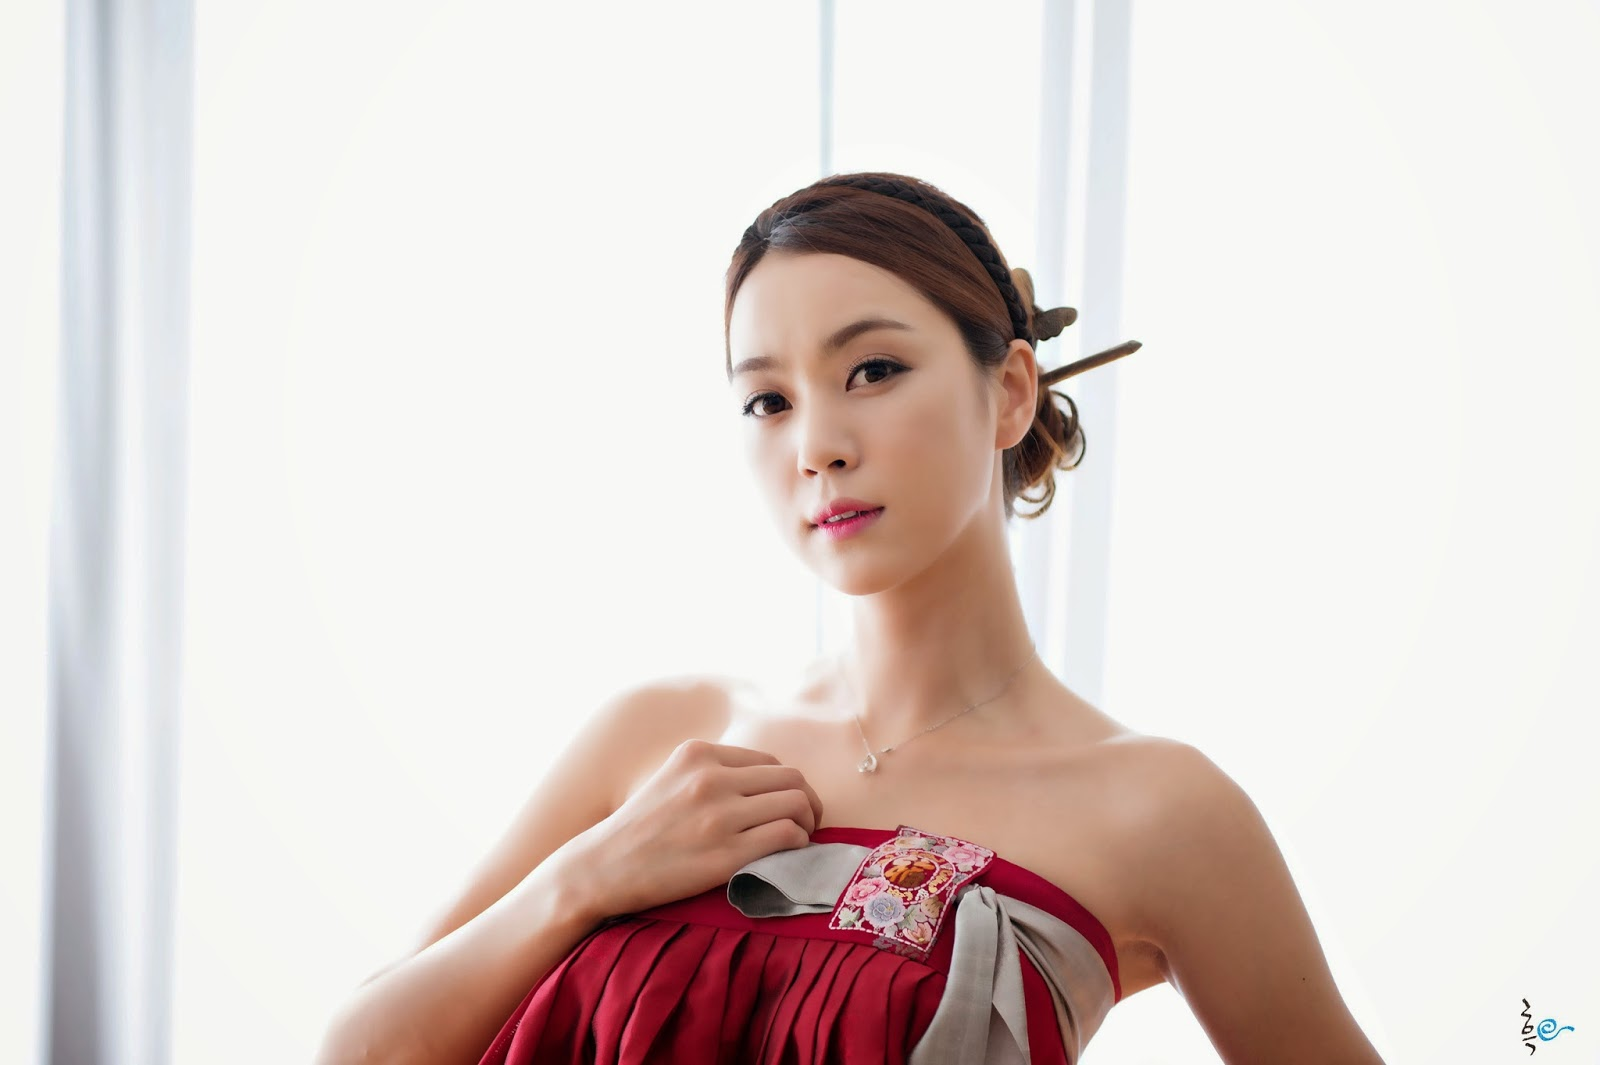 Ju Da Ha - 2014.8.9: Daily Korean ShowBiz News